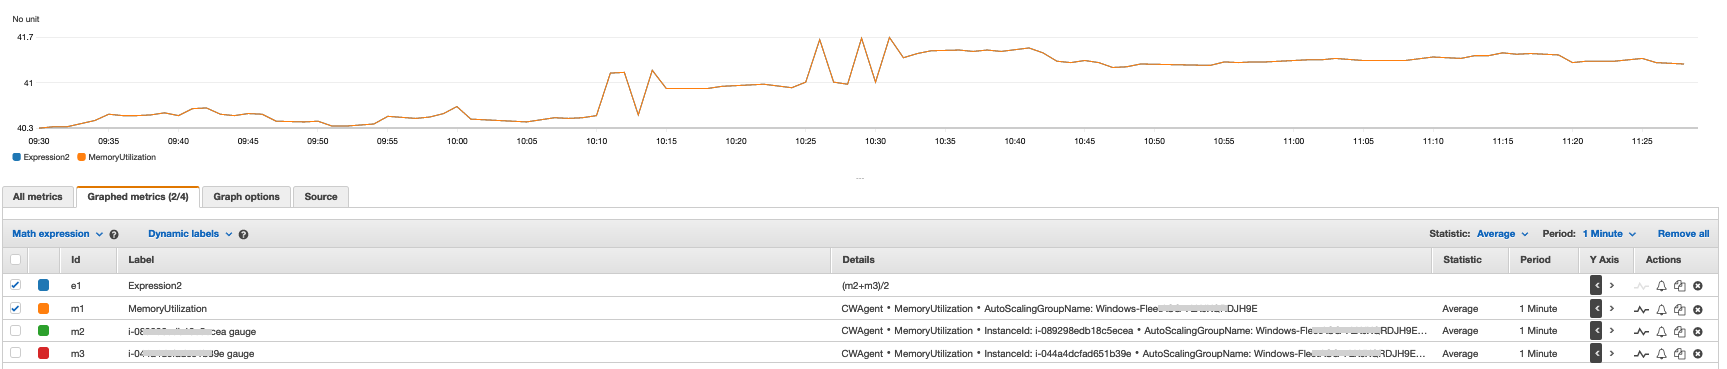 Comparing aggregated MemoryUtilization metric on Amazon EC2 Auto Scaling group with the average math expression of the MemoryUtilization metrics on individual instances in the Windows fleet.